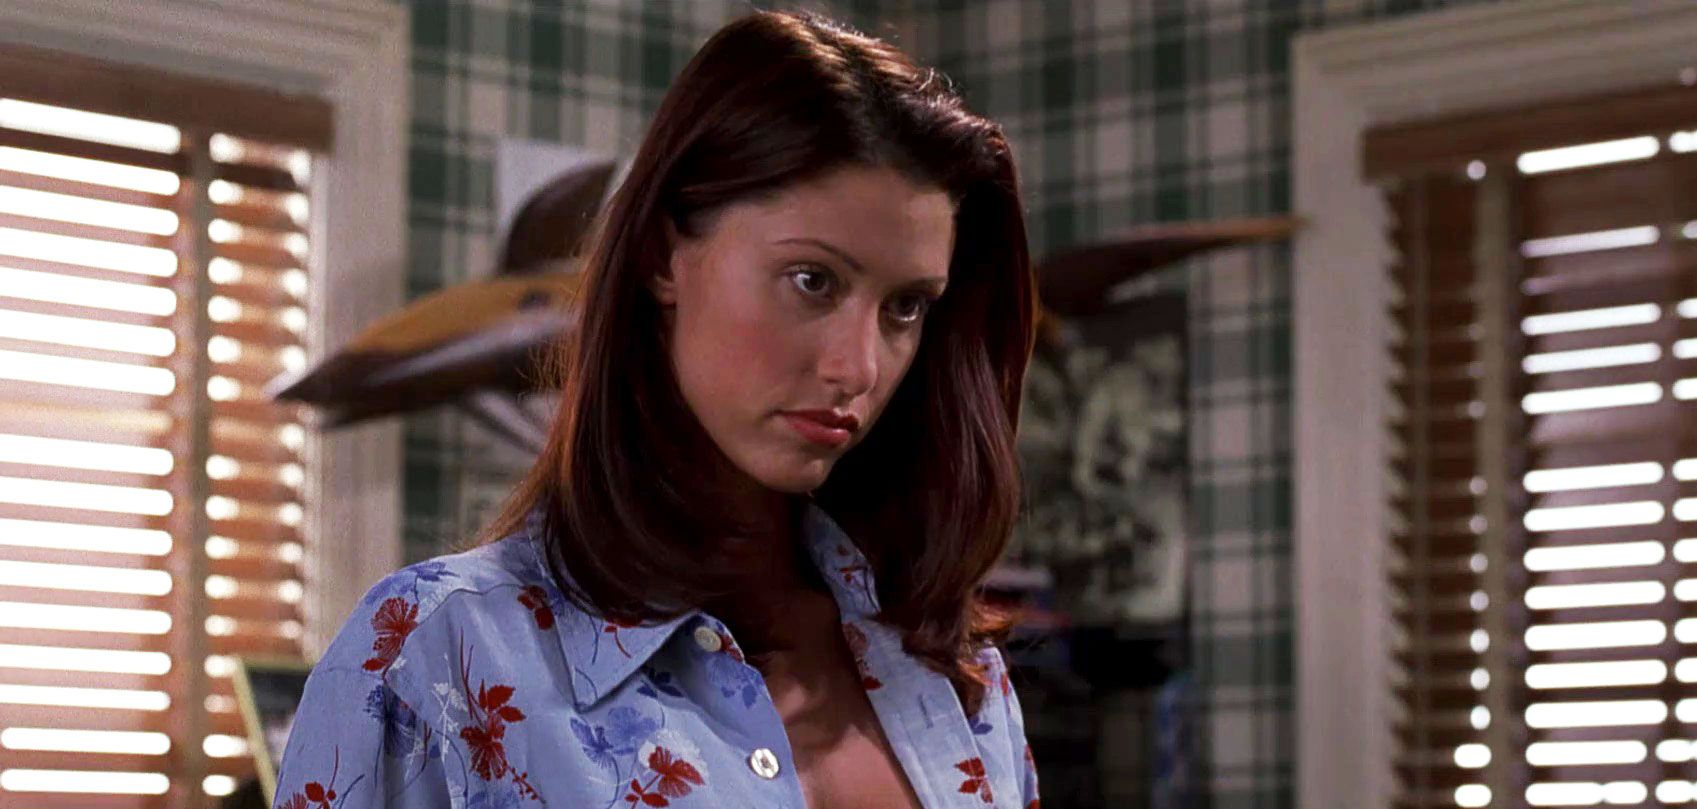 American Pie Nude what happened to shannon elizabeth?